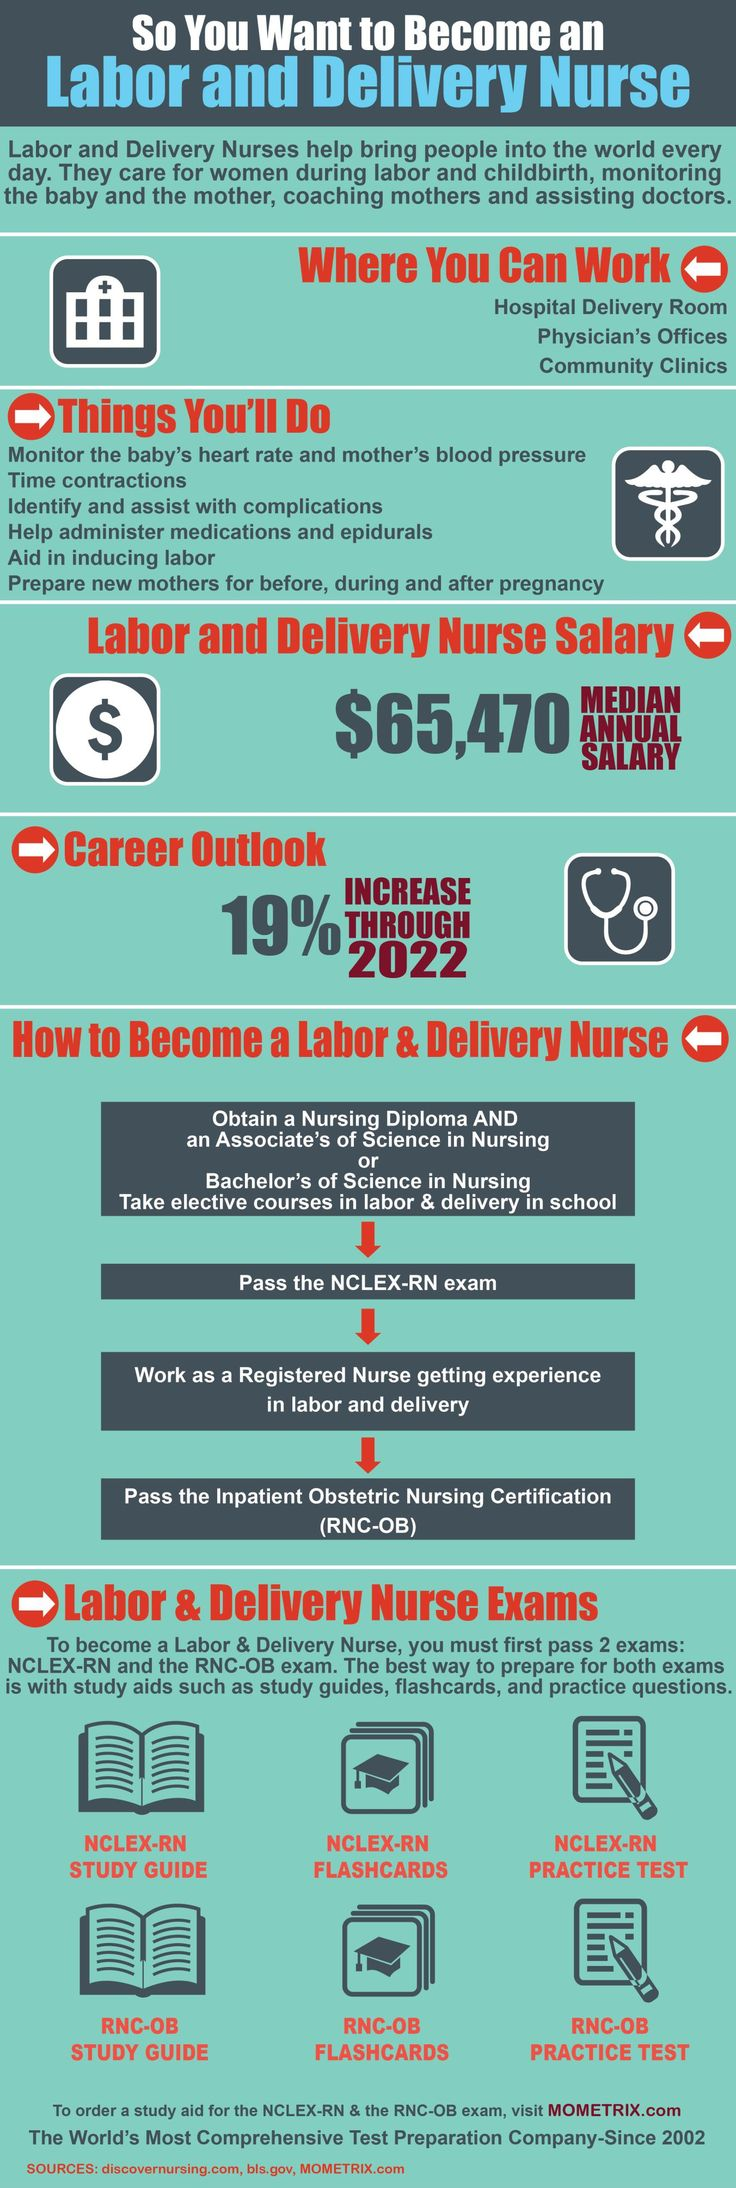 So You Want to Become a Labor and Delivery Nurse